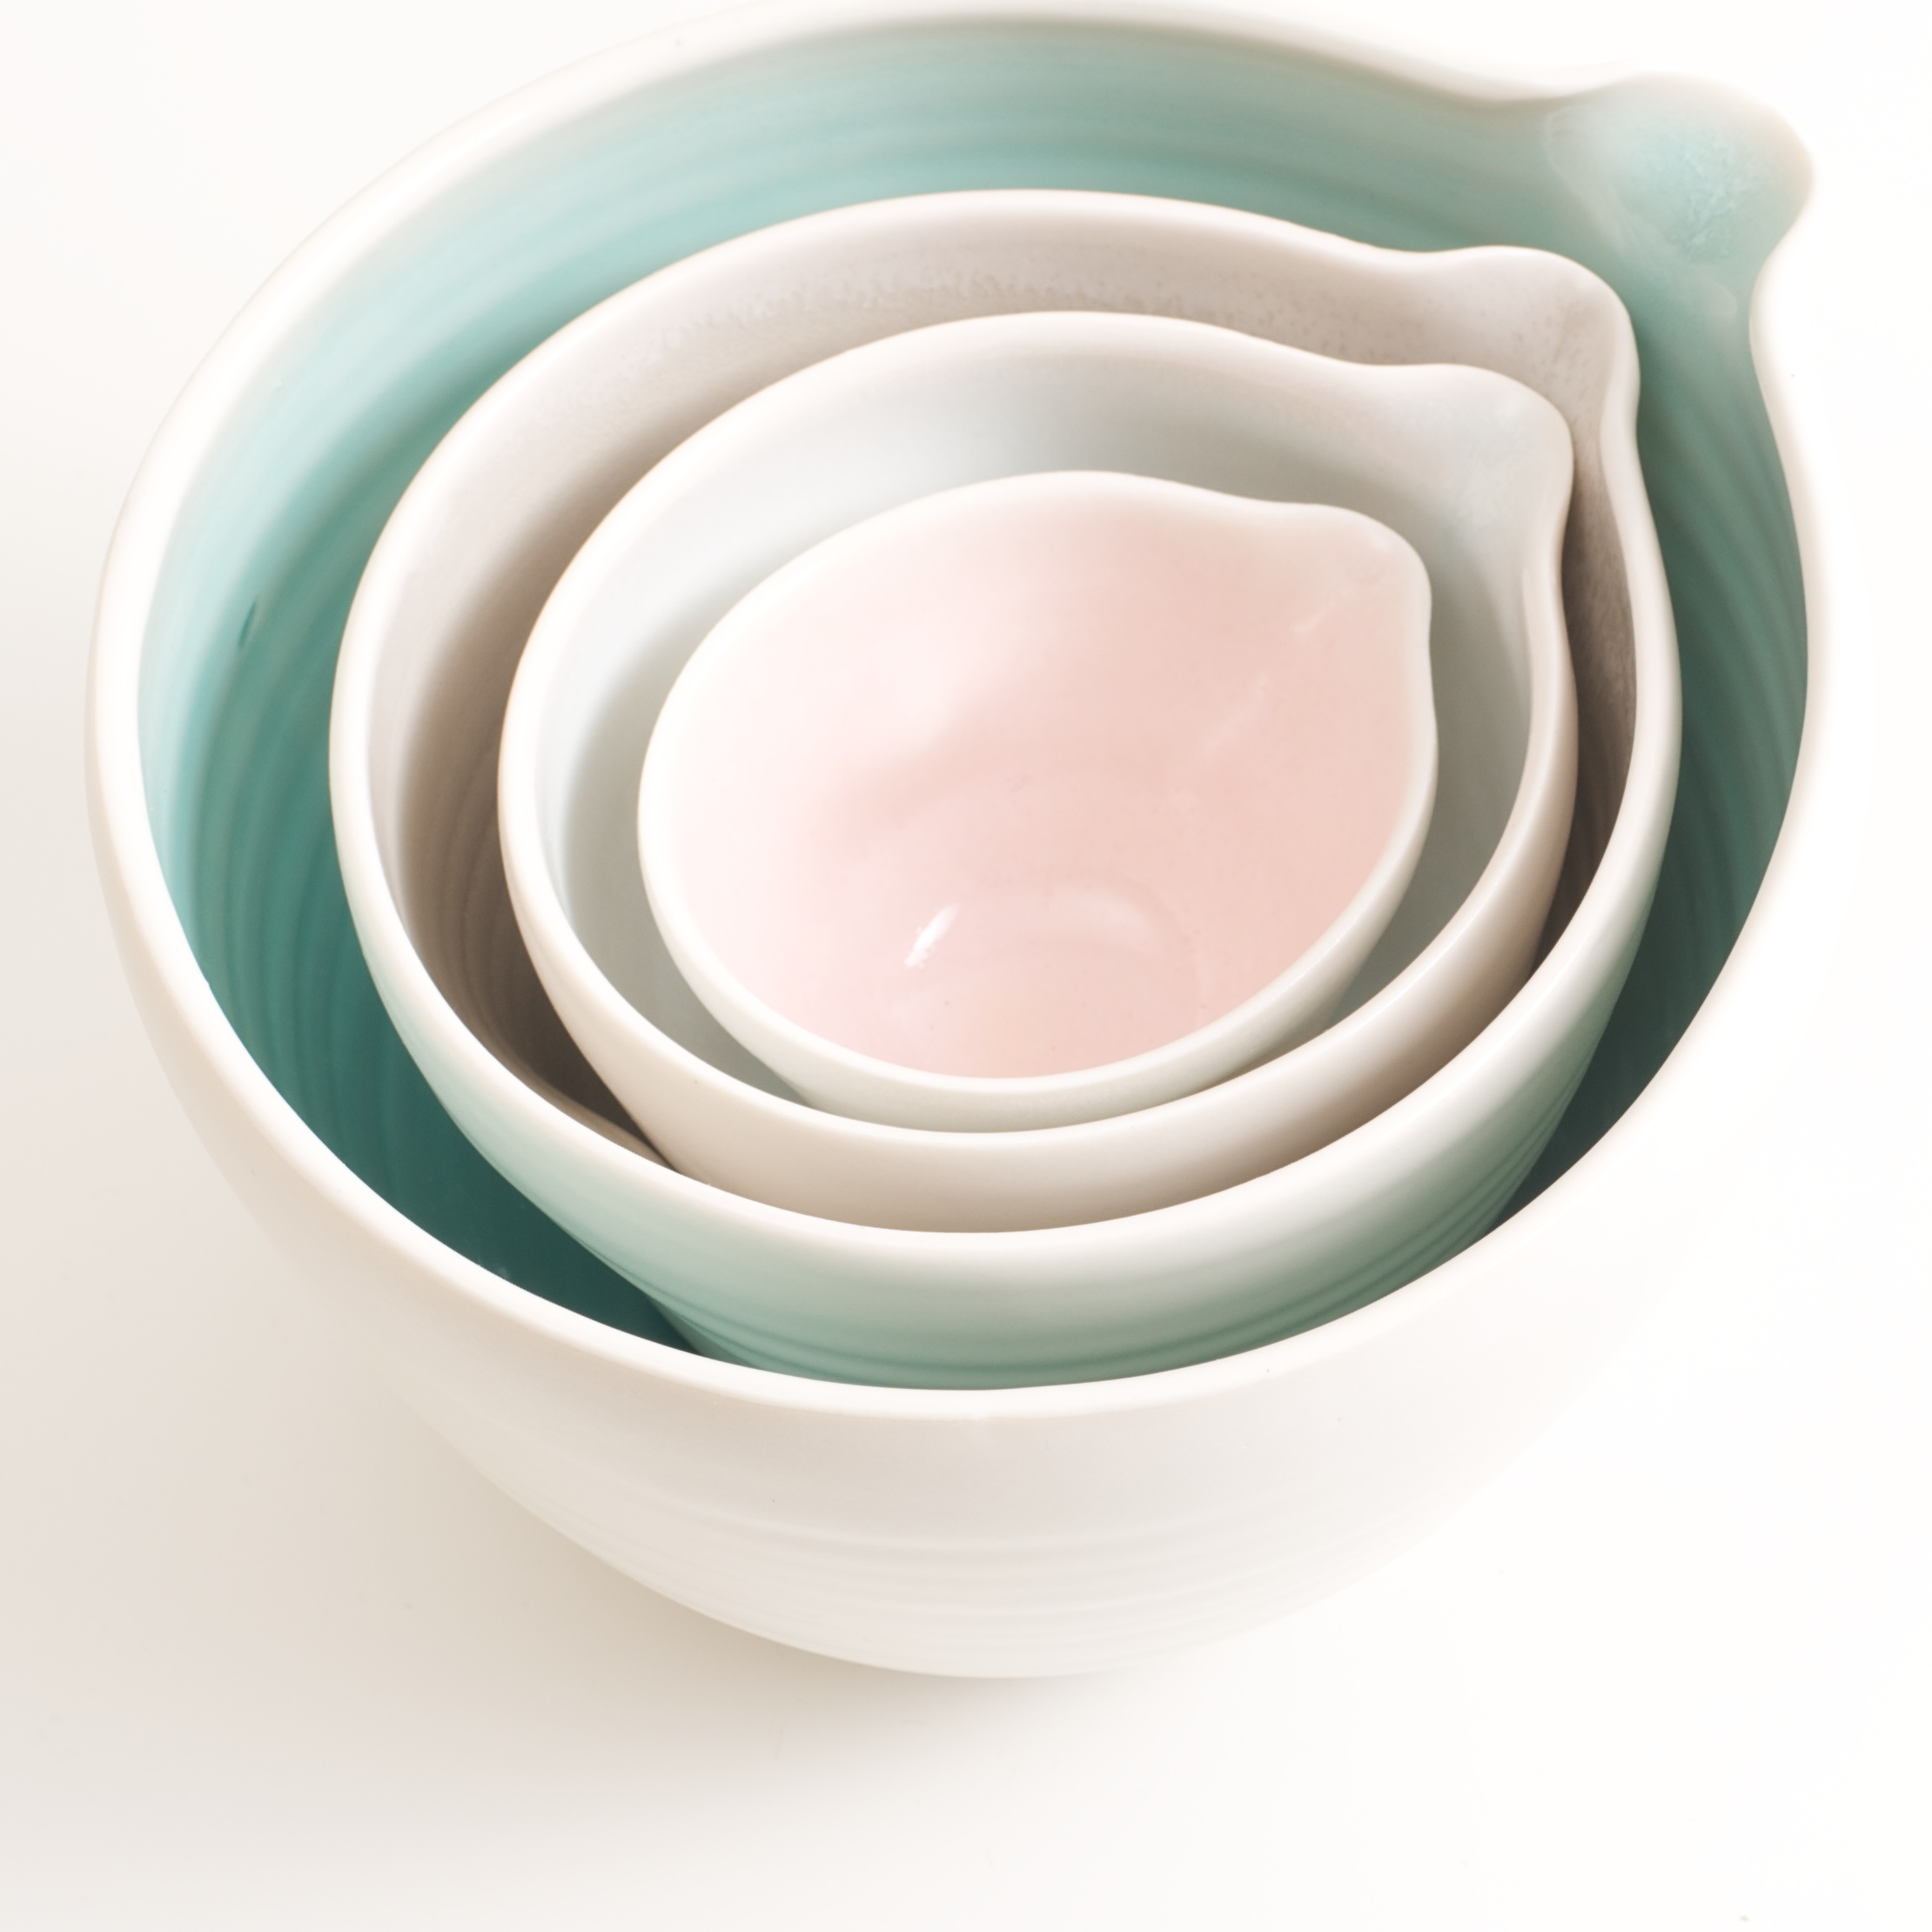 pouring bowl- handmade porcelain- tableware- cookware- dinnerware- turquoise pourer- dimpled porcelain- baking- mixing bowls- pink- blue-grey-turquoise